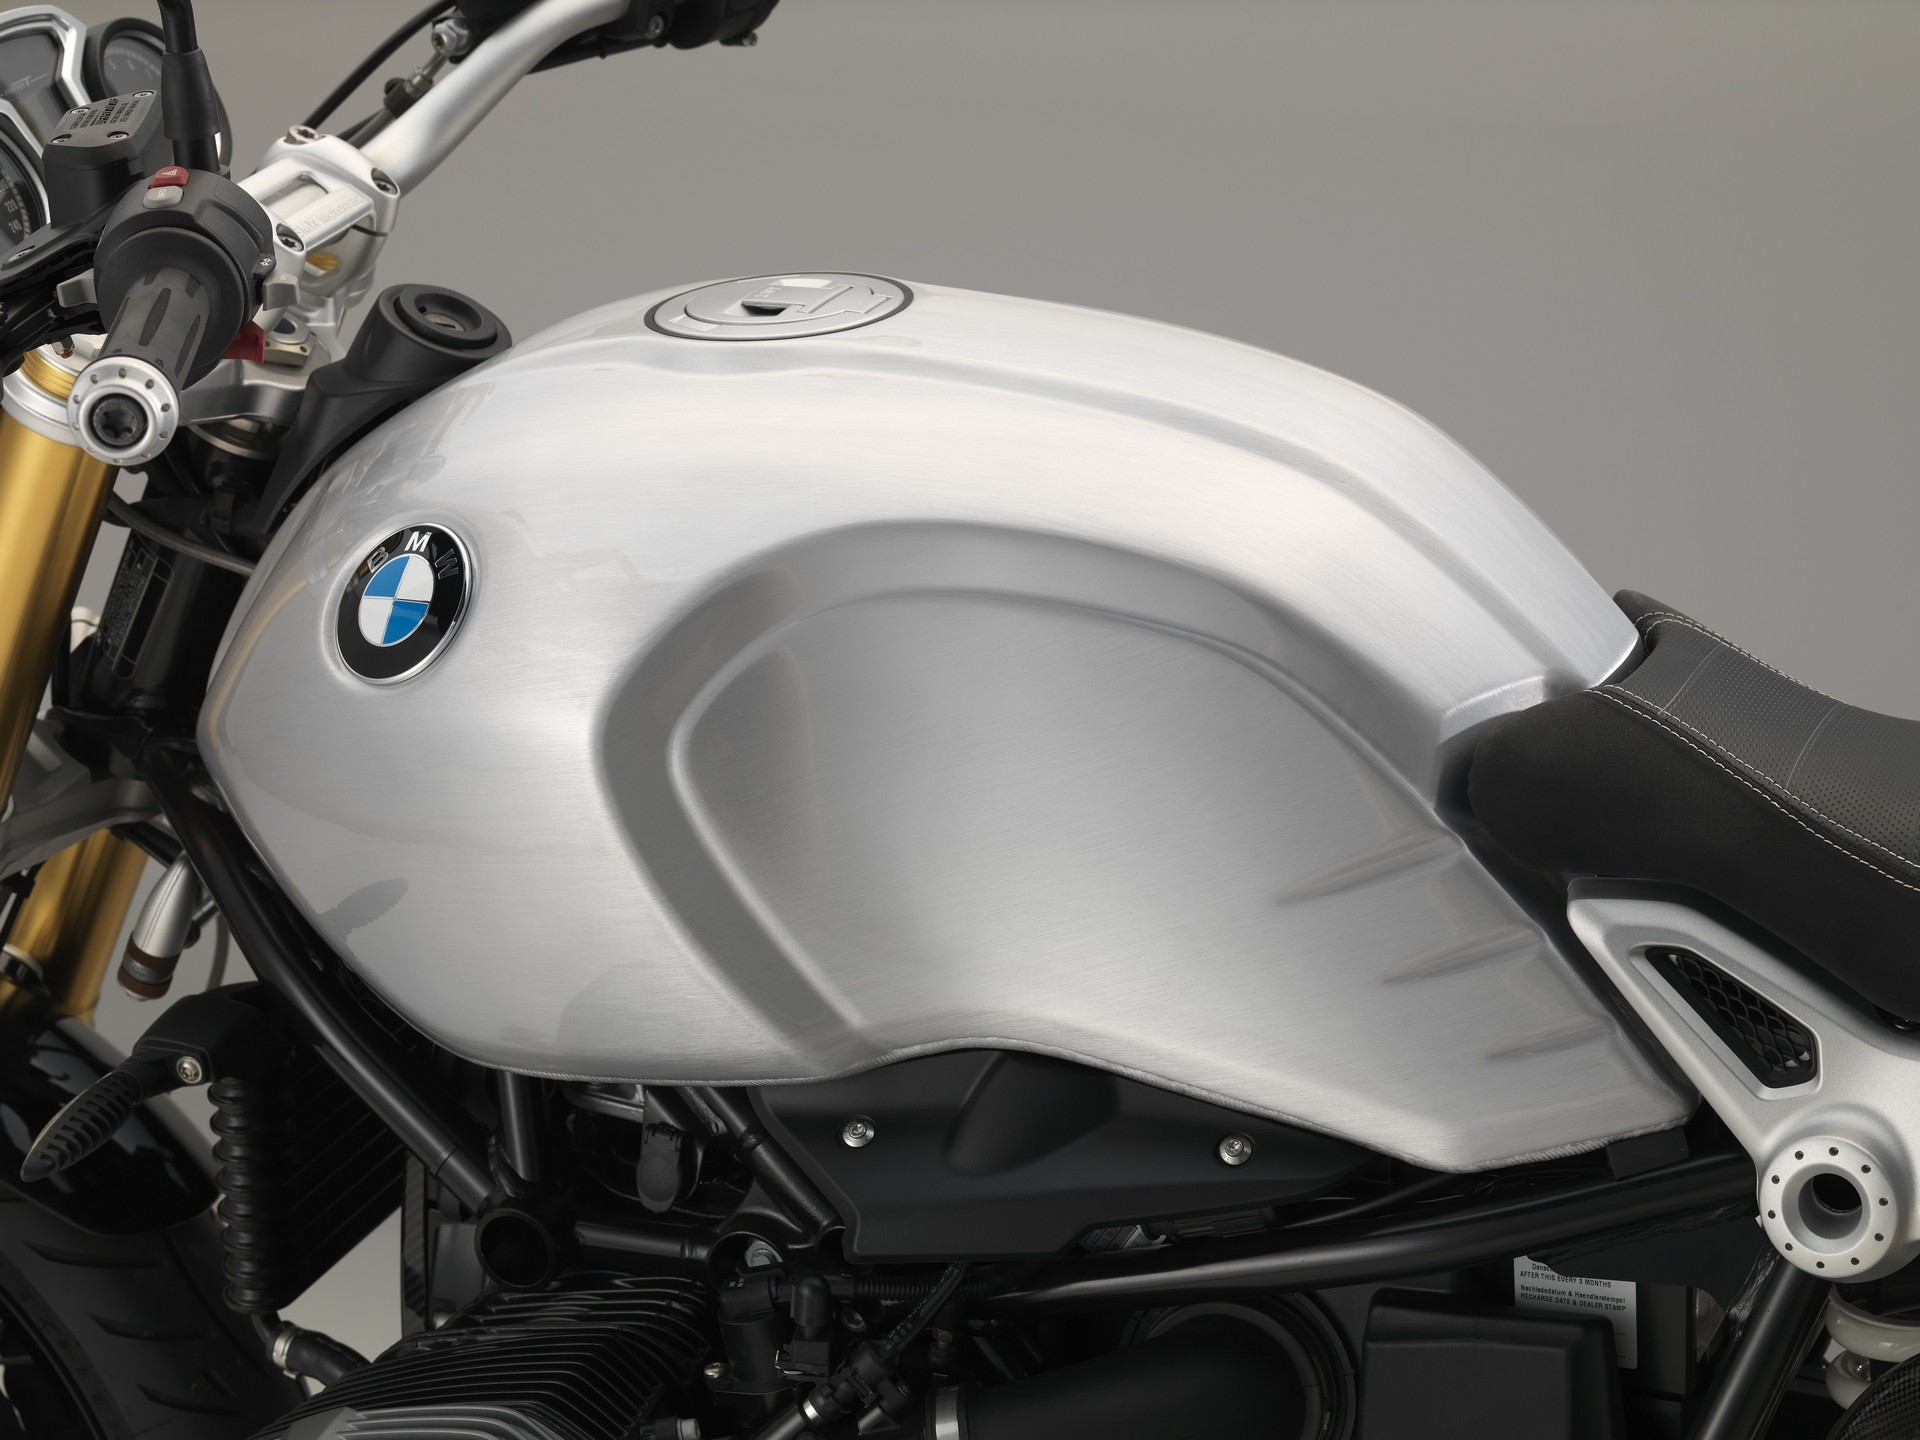 Voting Open For The Best Custom Bmw R Ni  In France Choose Which One Gets Built together with Tom Cruise Suspended Apr in addition The Bmw Motorrad Spezial Division Will Create Special Bikes From Now On besides Hqdefault moreover Bmw Motorrad Collection Adds New Products. on bmw motorcycle r nine t